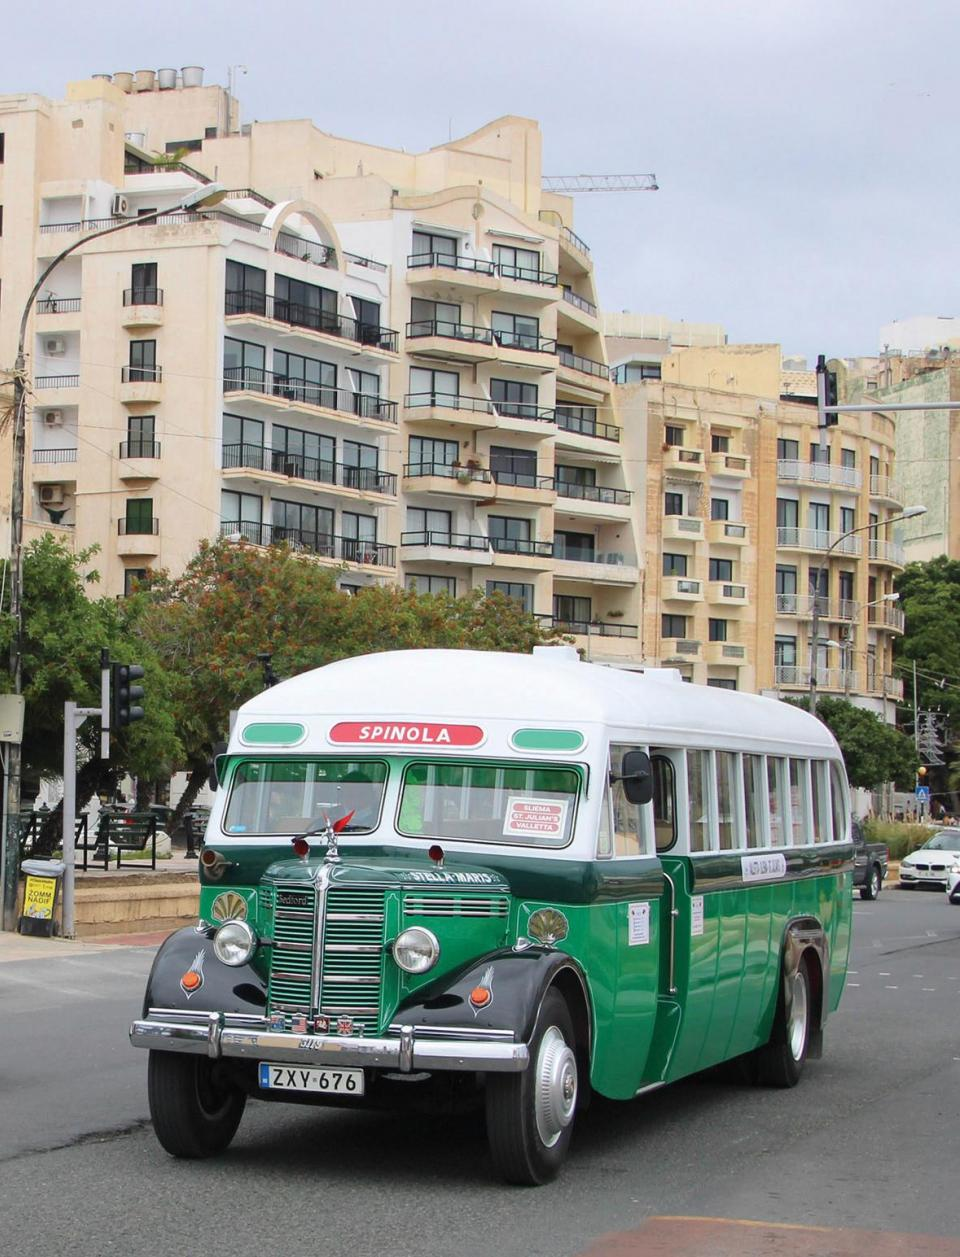 The two-tone green and white bus serving the old Sliema route.